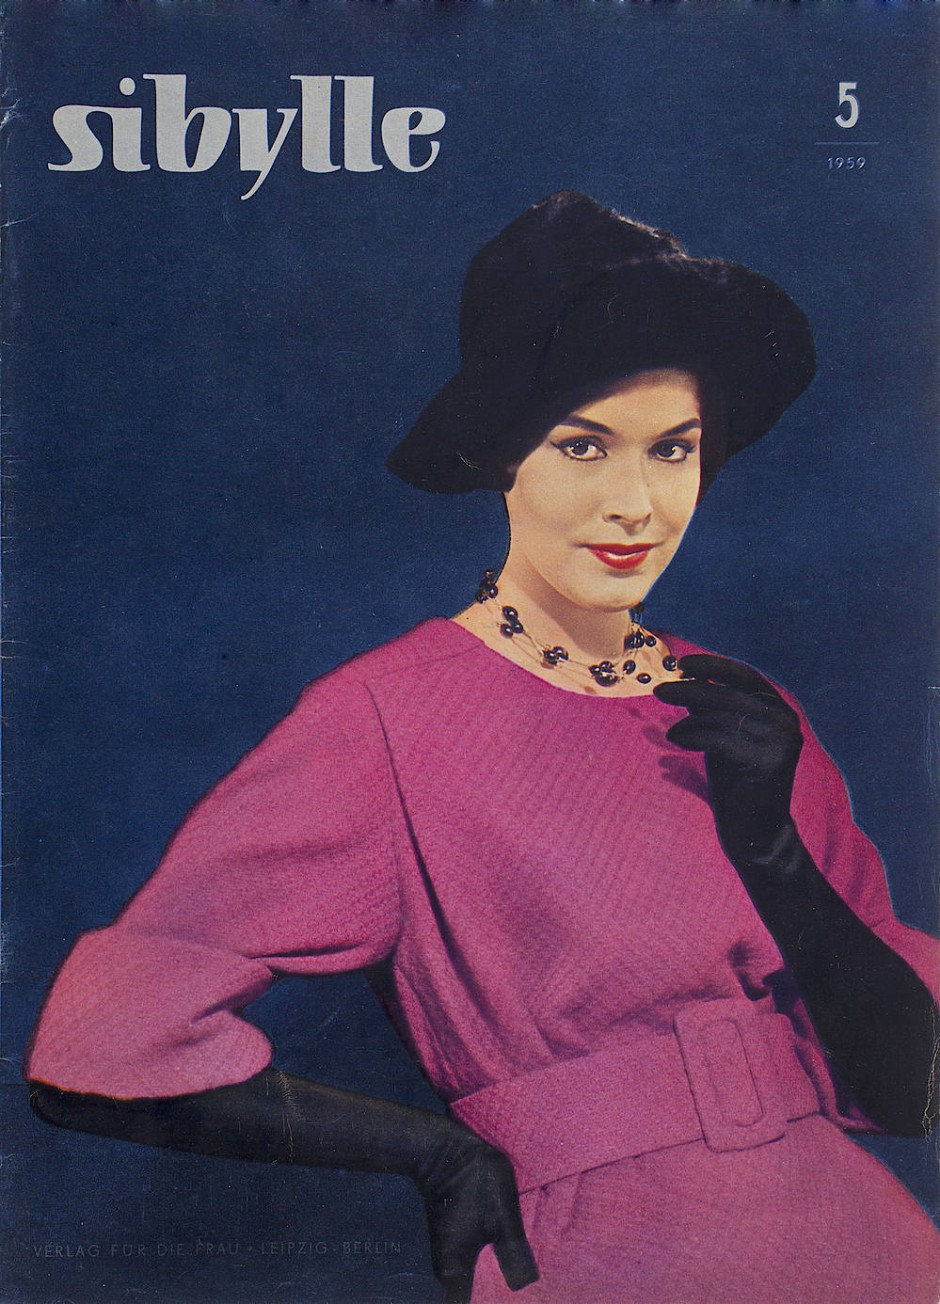 Sibylle 5/1959, Cover